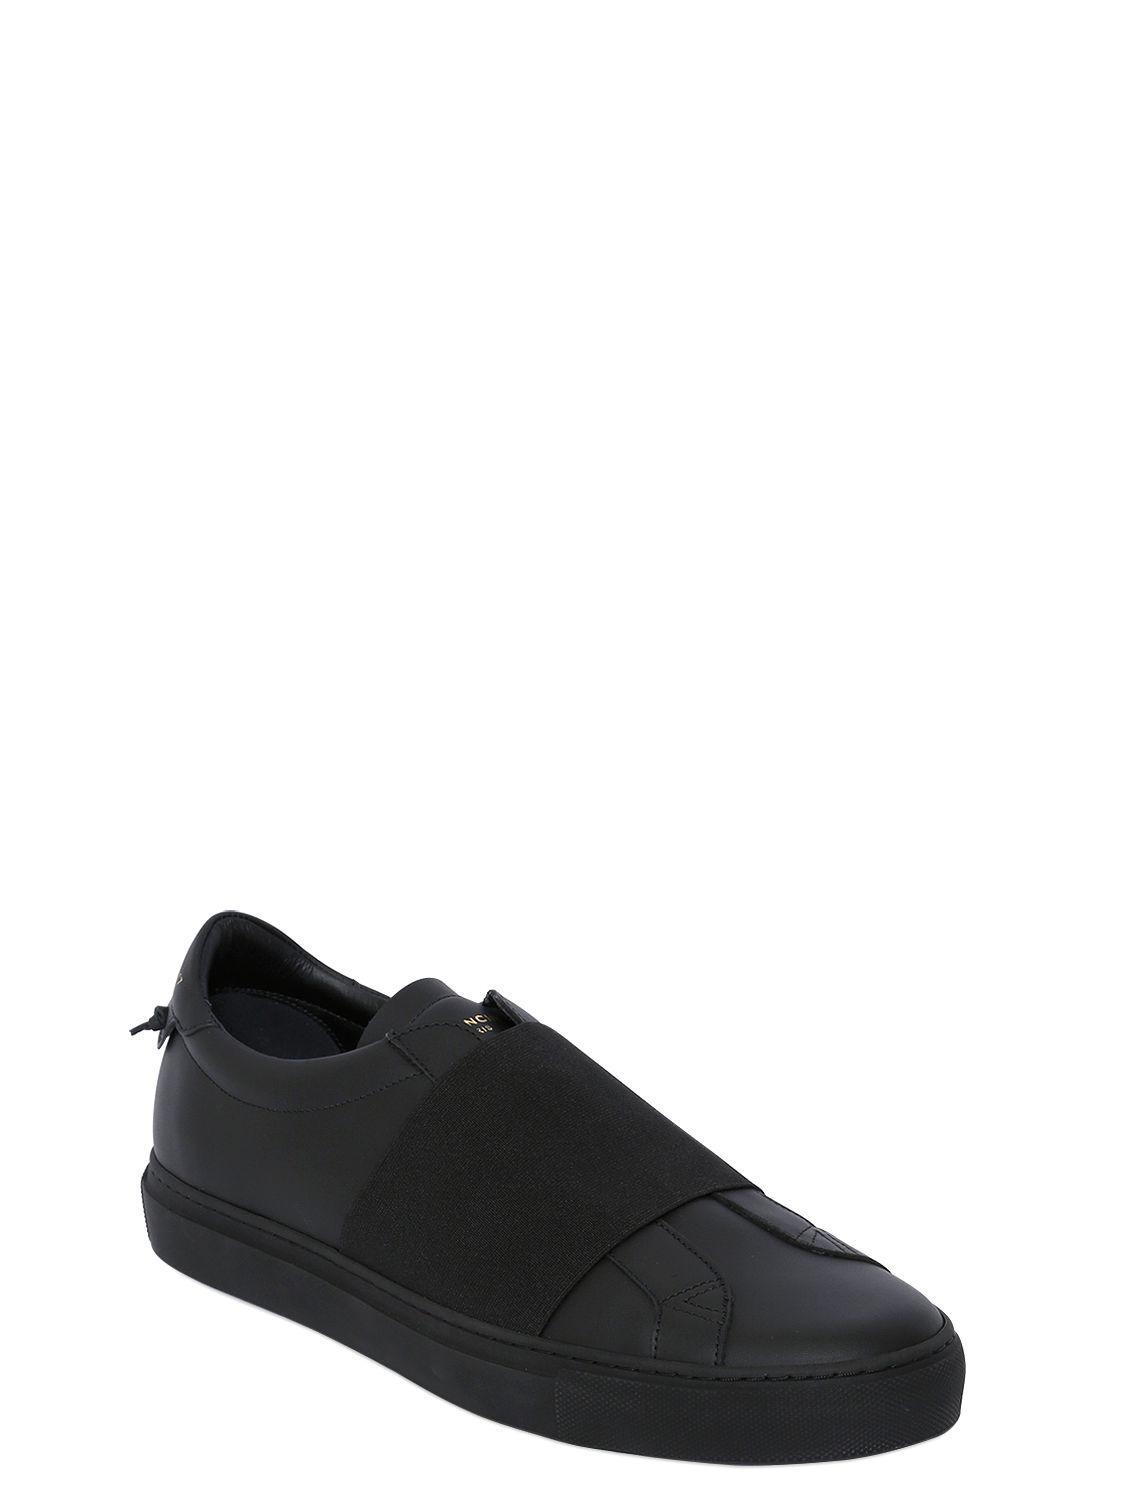 43e6e84a019a7 Lyst - Givenchy Urban Street Leather Slip-on Sneakers in Black for Men